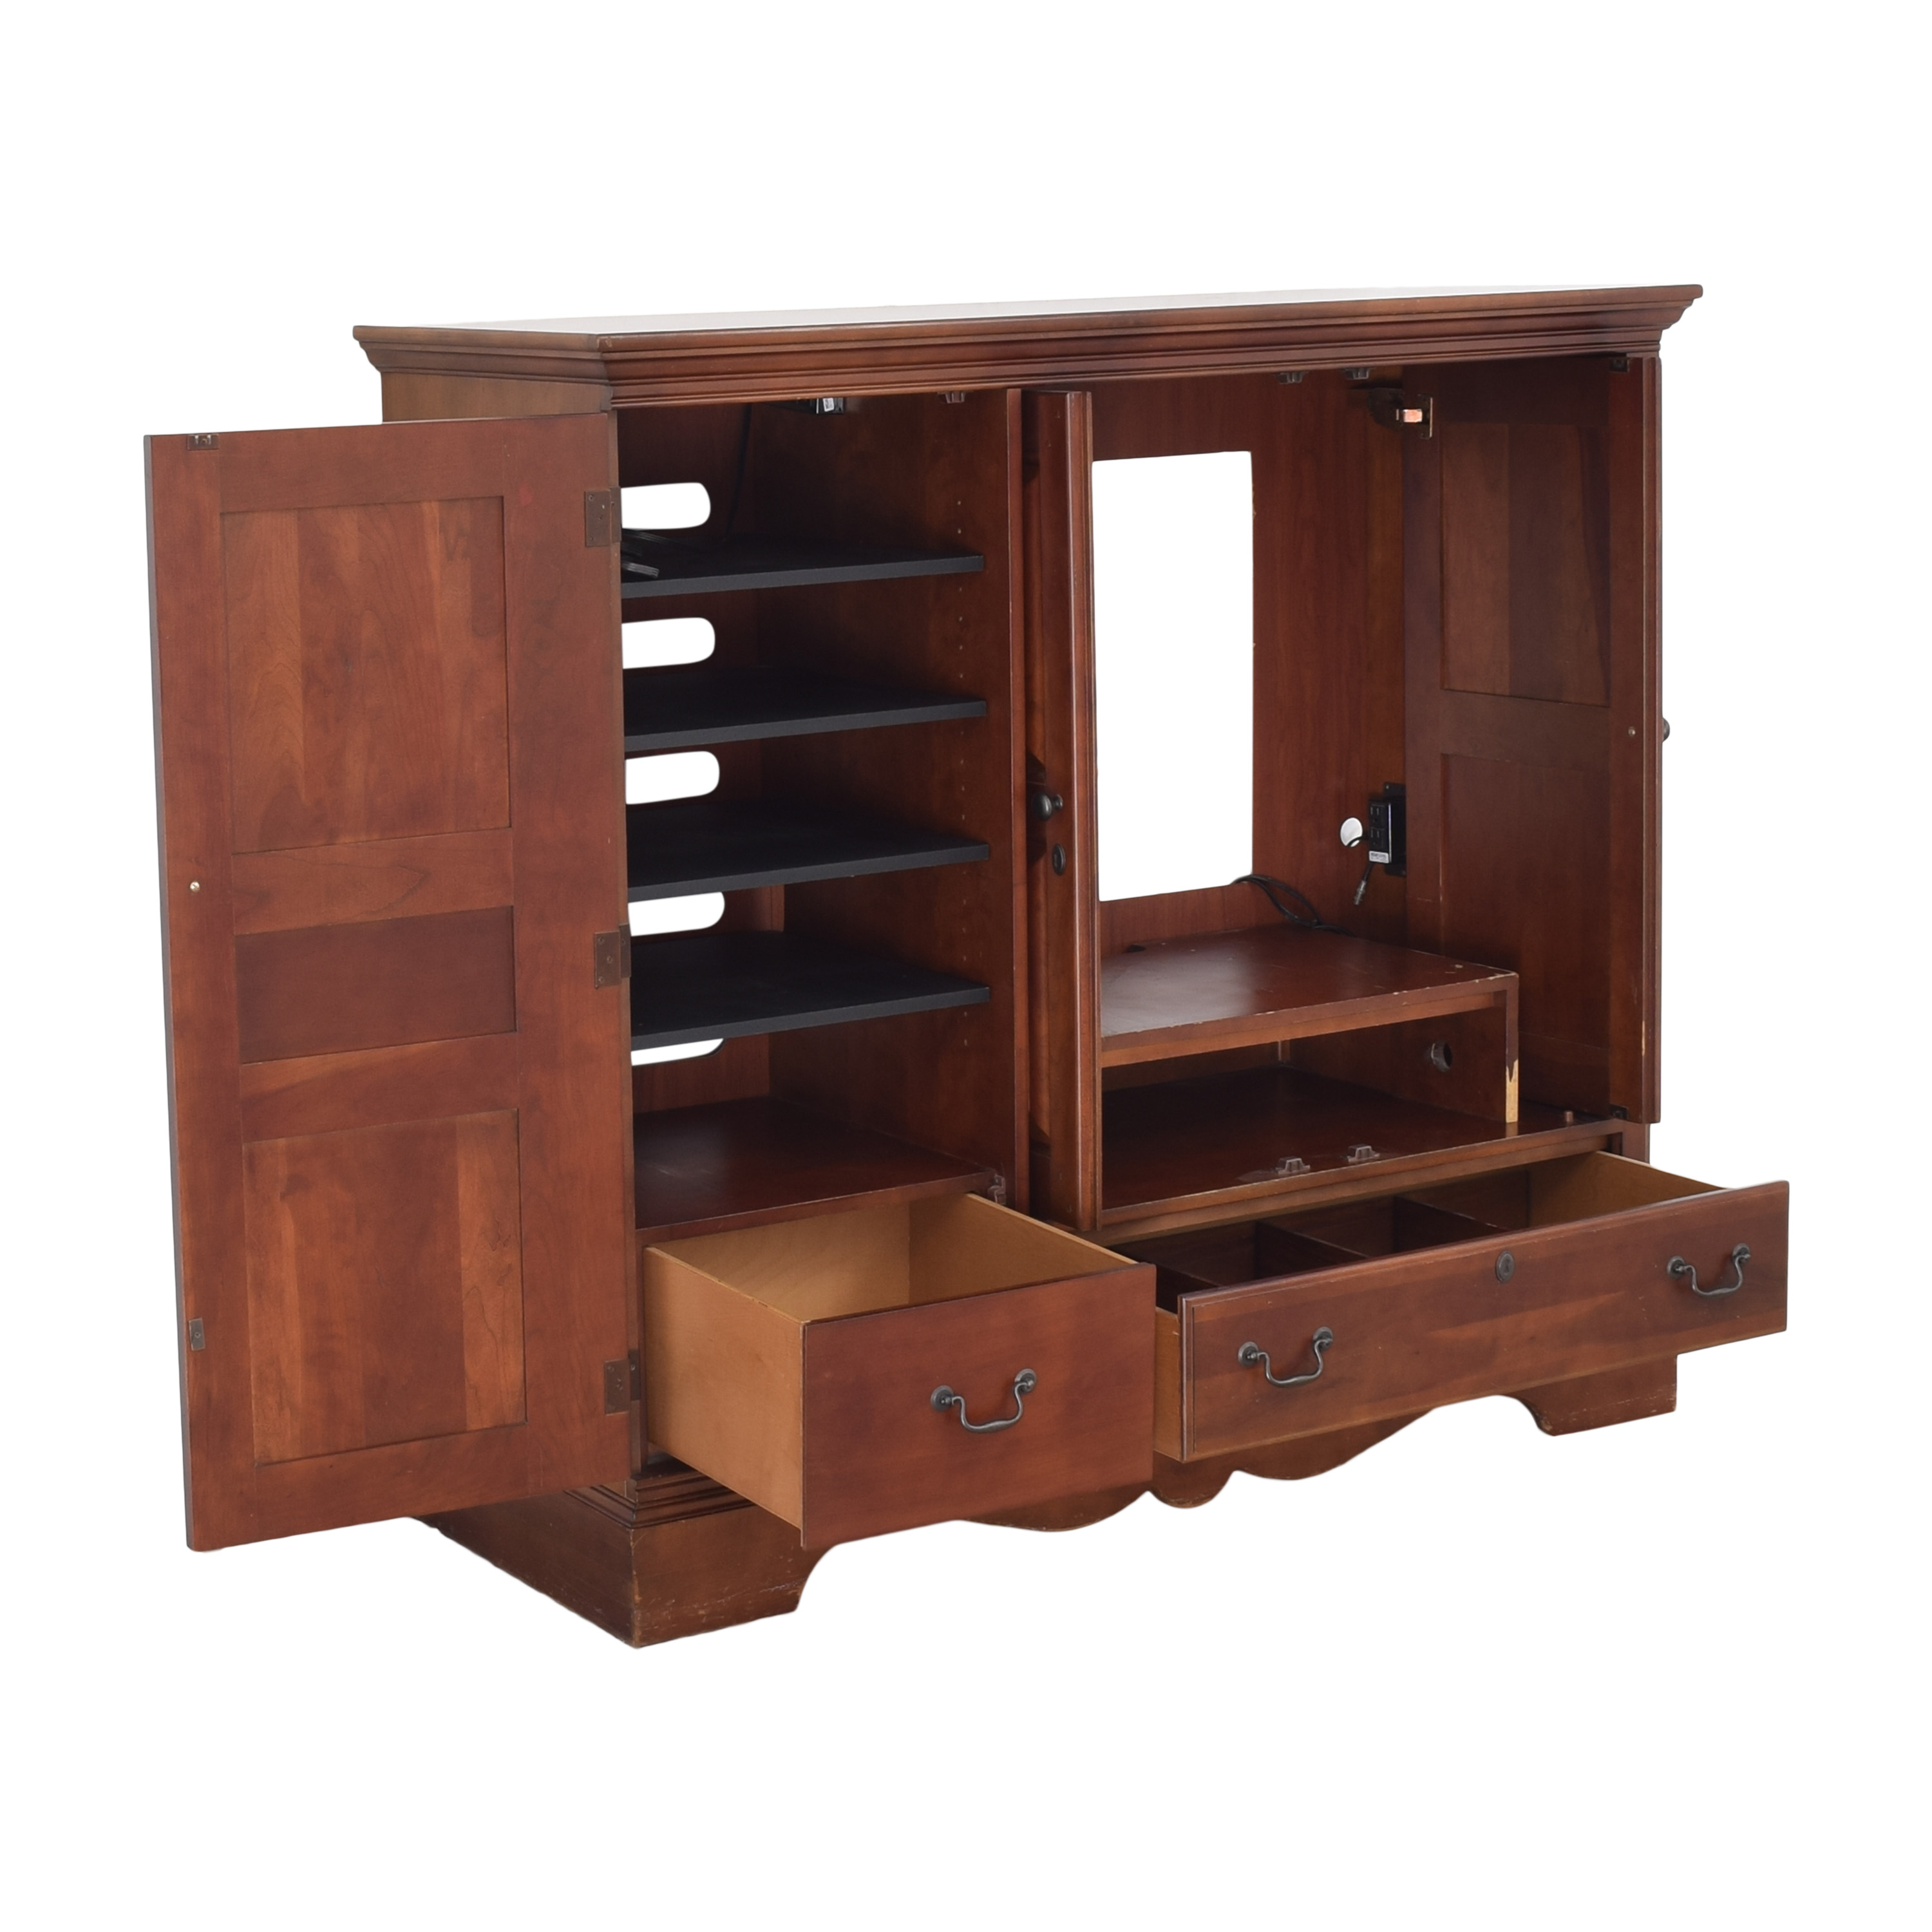 Macy's Macy's Entertainment Center Cabinet used